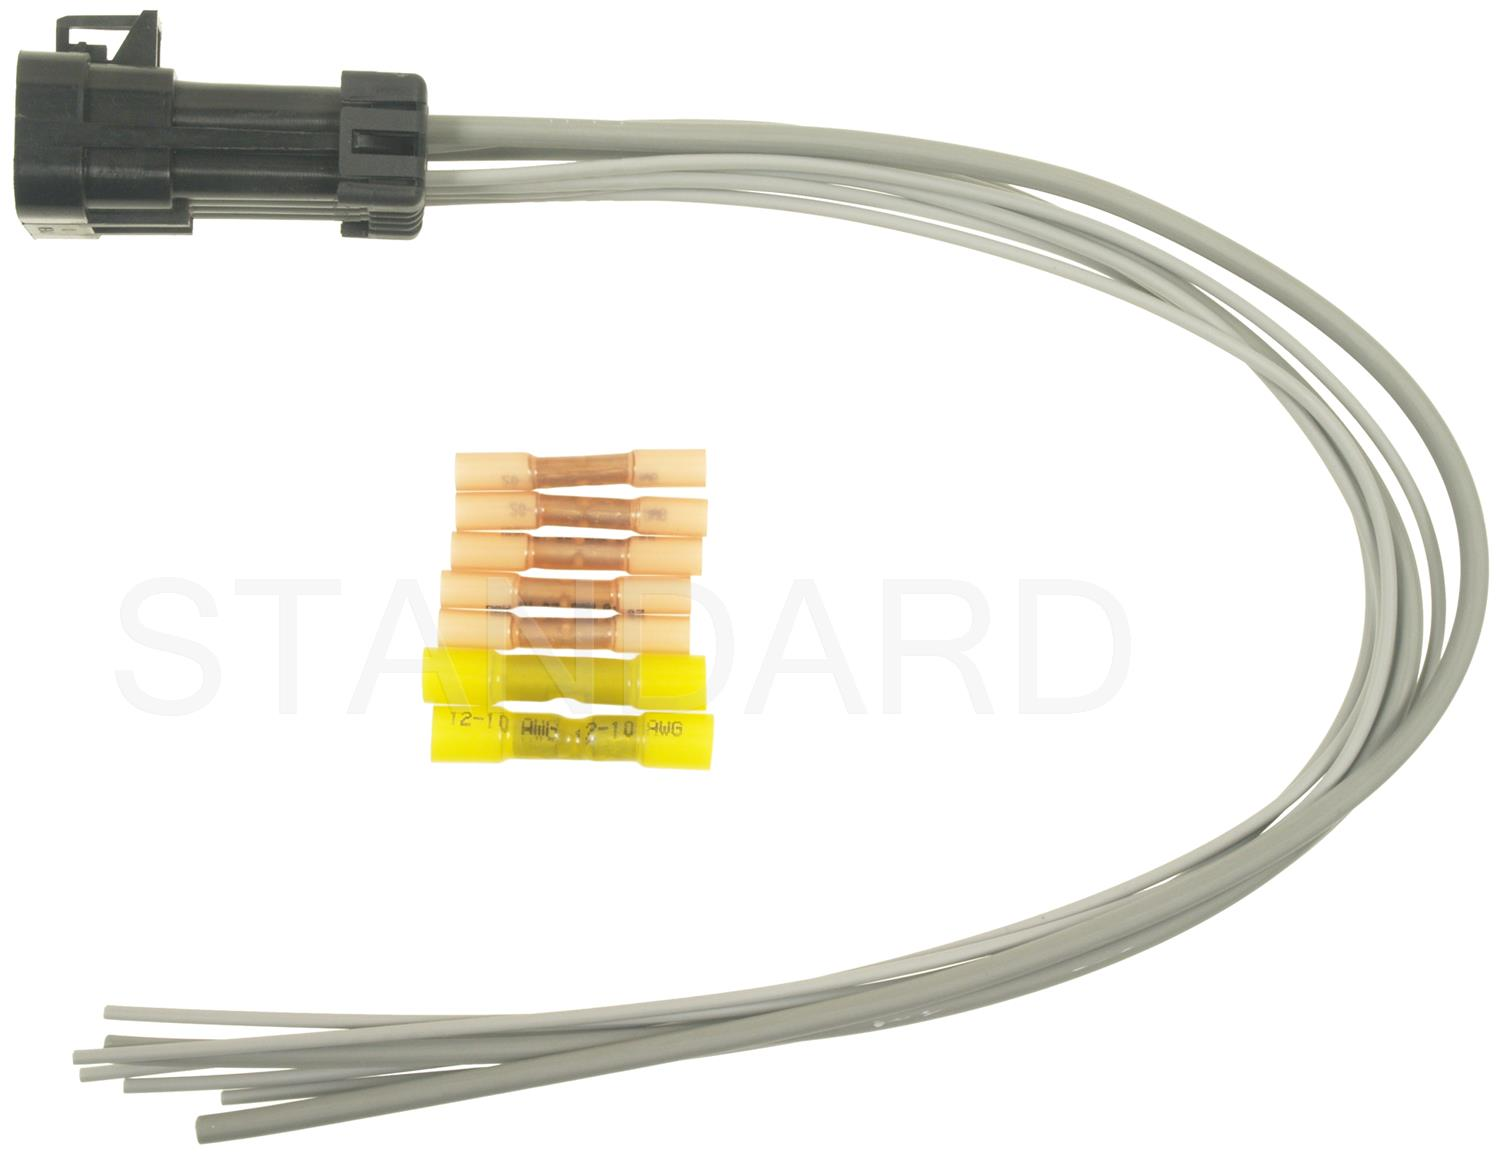 Cadillac Deville Wire Harness on 2000 ford ranger wire harness, 2000 toyota tundra wire harness, 2000 pontiac sunfire wire harness,